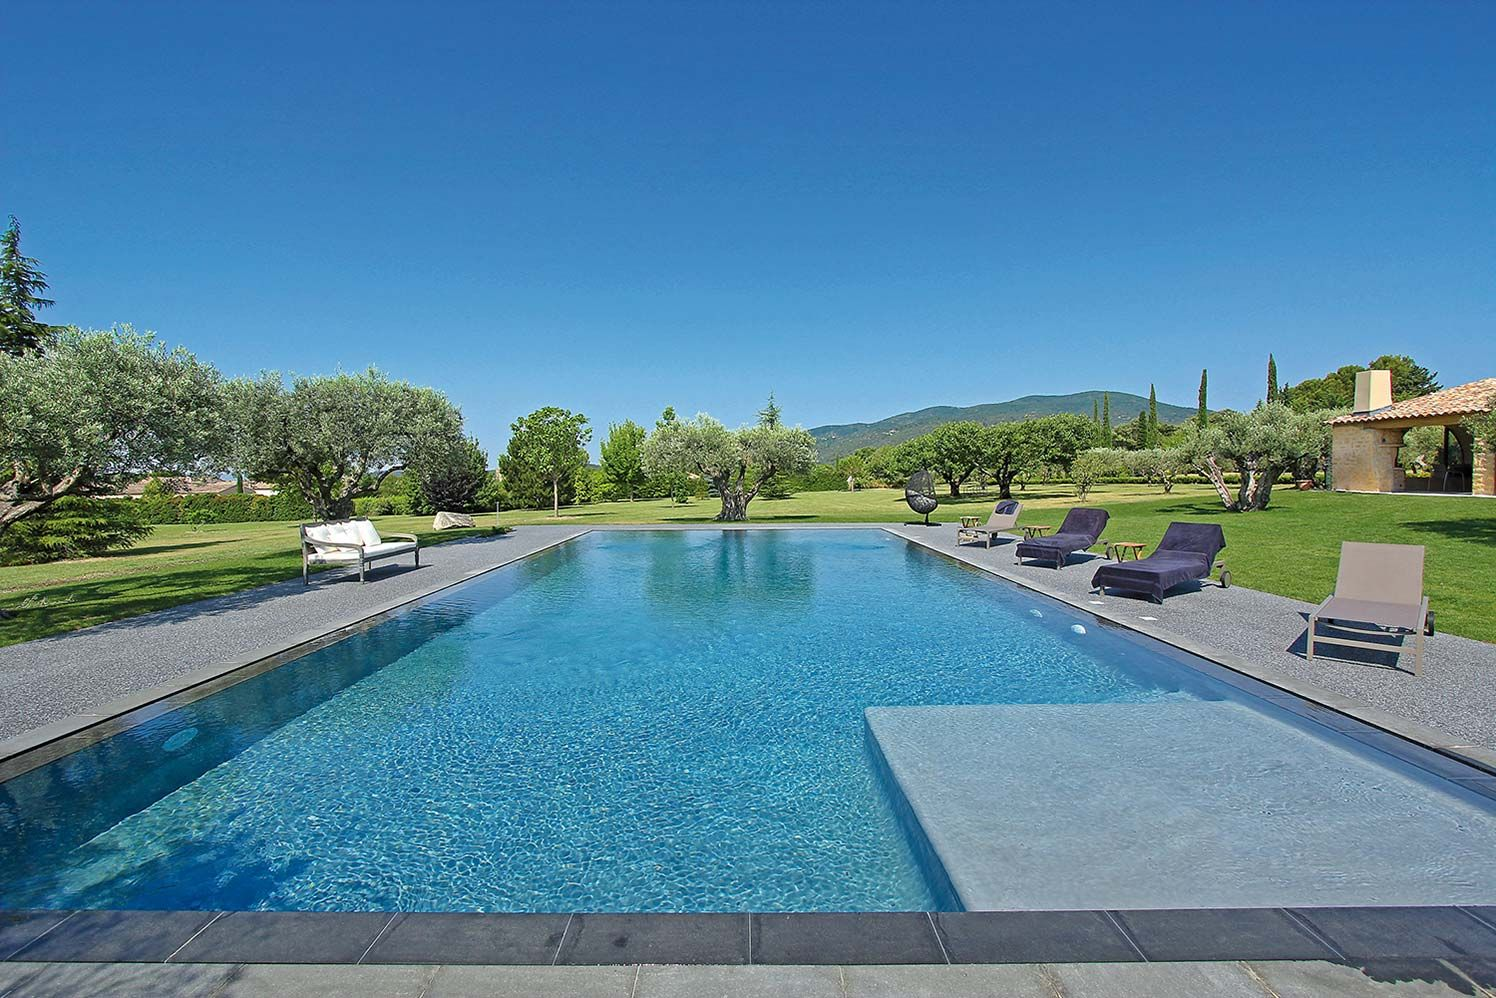 La piscine petite note contemporaine provence and outdoor living - Photo piscine miroir ...